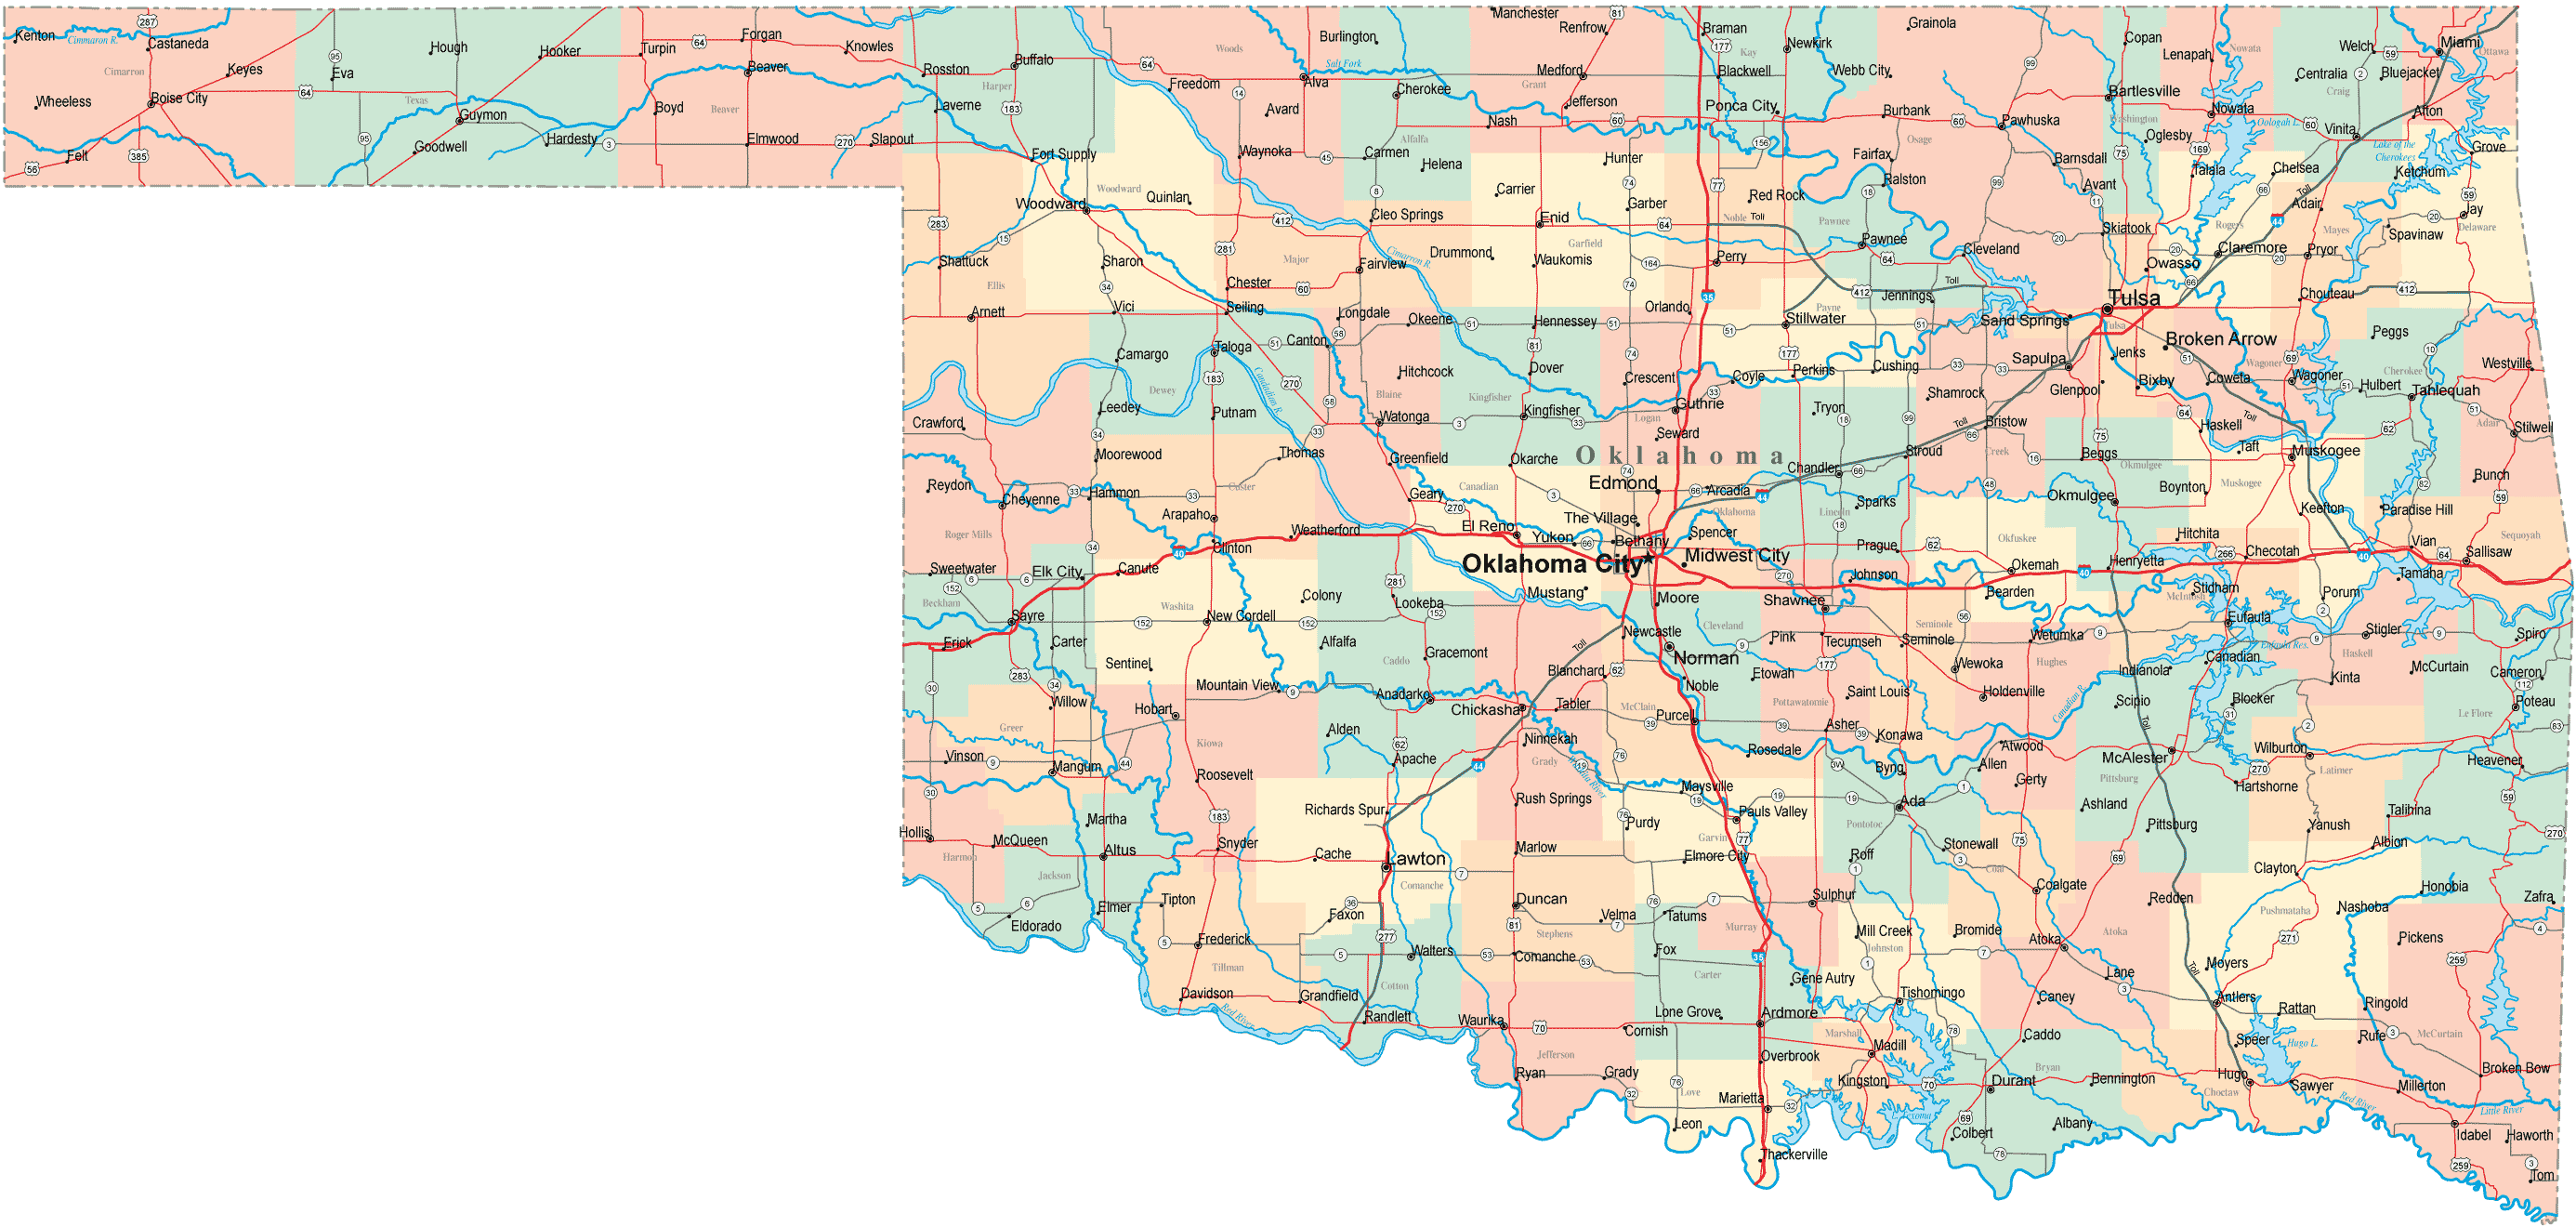 Map Of Cities Counties In Oklahoma Mapsofnet - Counties of oklahoma map